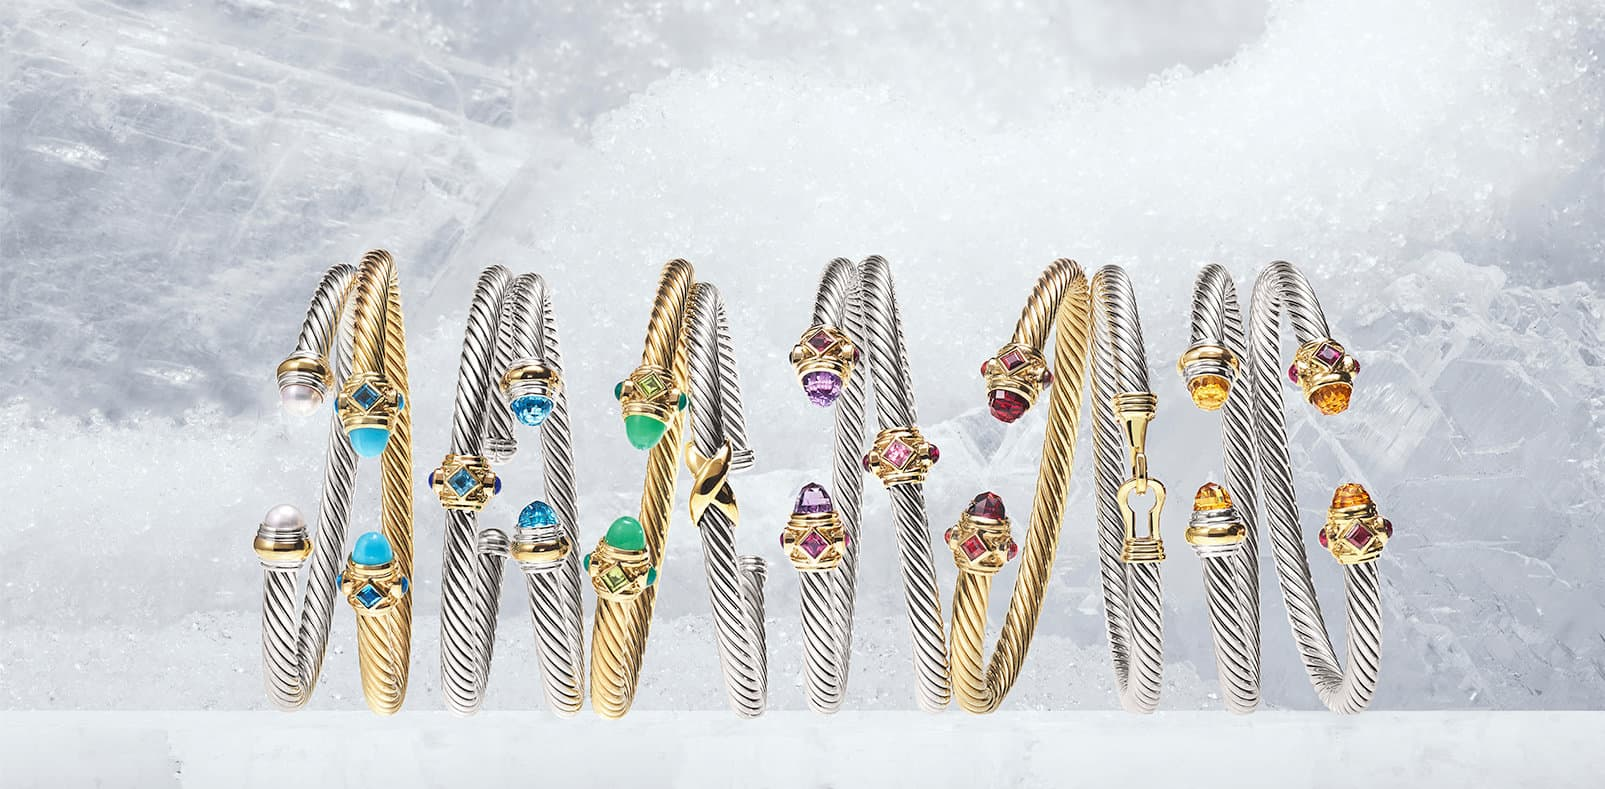 The Cable Collection® bracelets in sterling silver, 18K yellow gold and several colorful gemstones, in a row on sheets of ice.